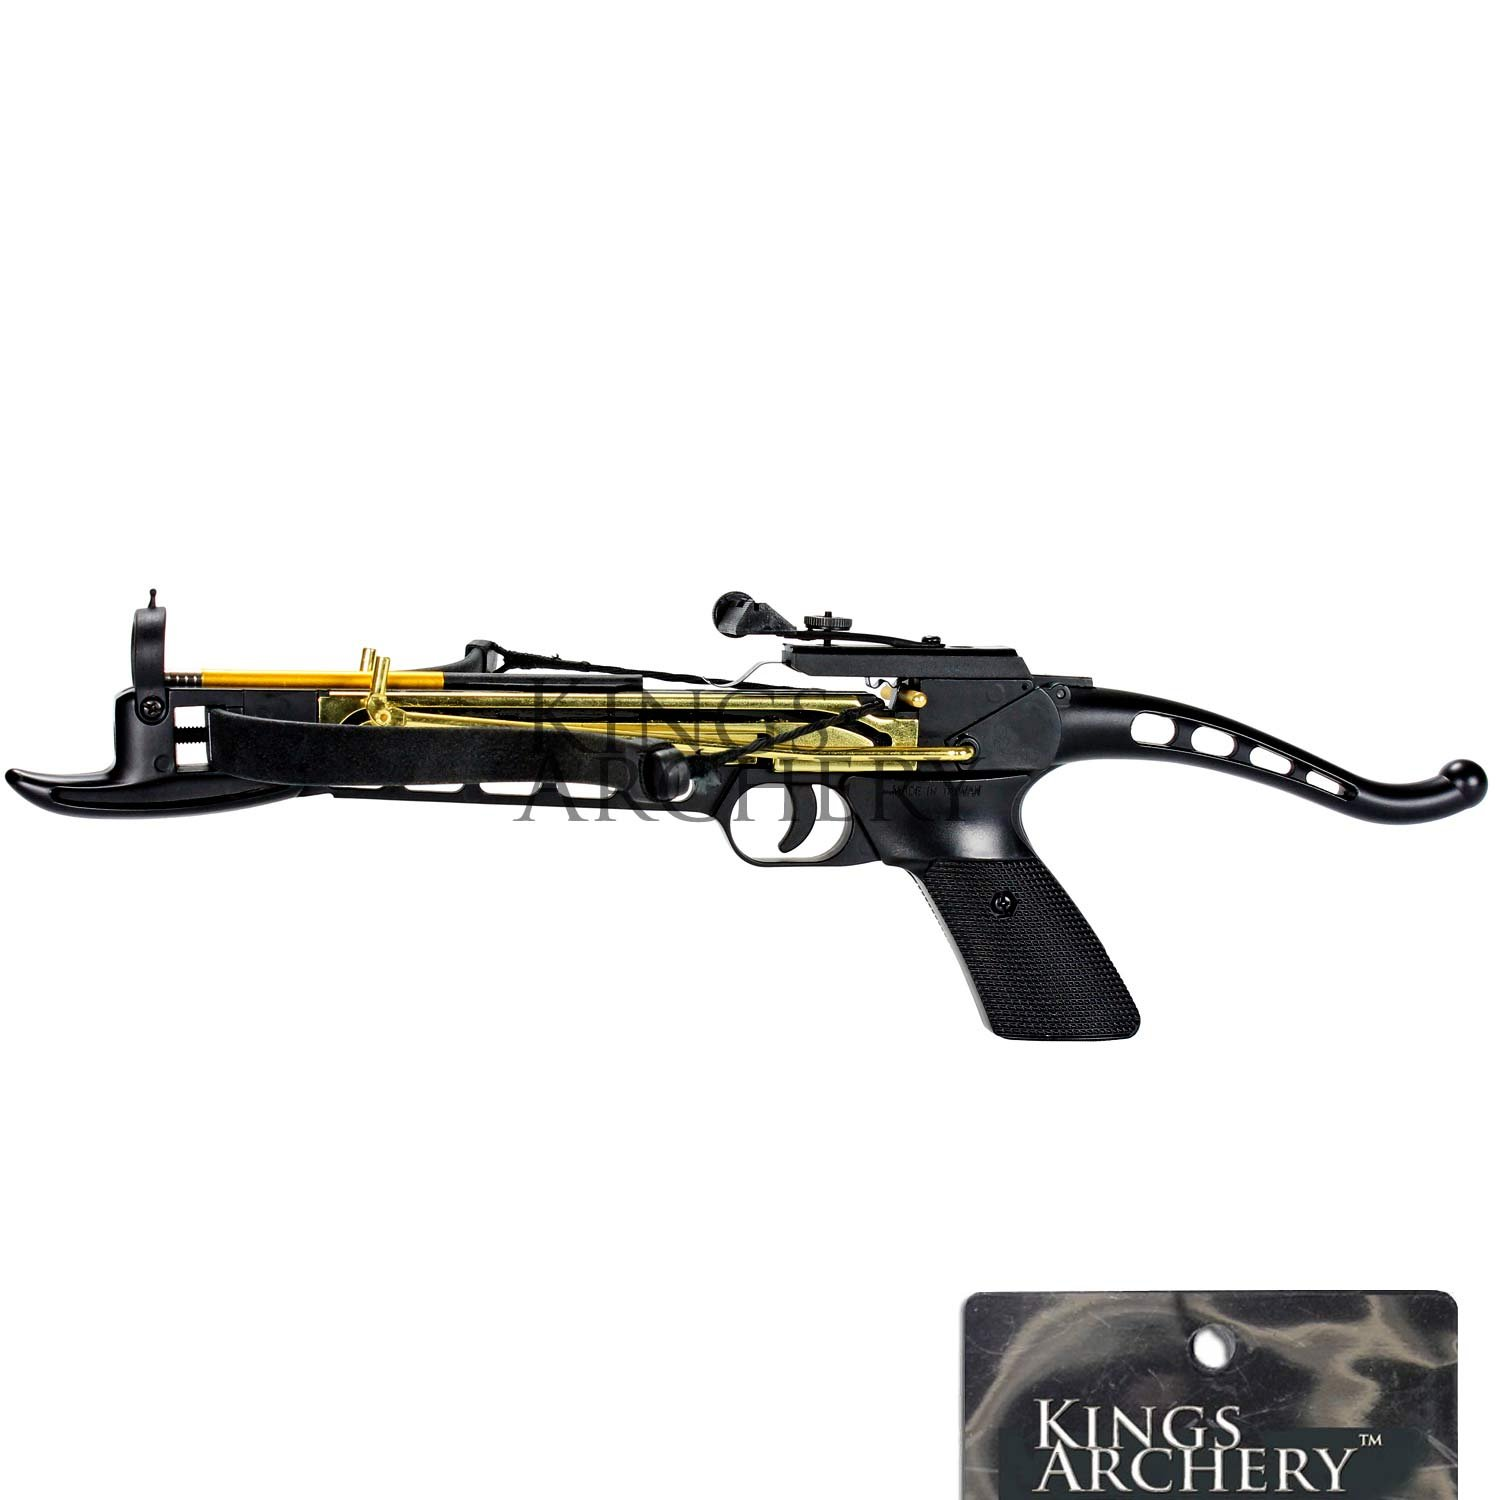 Crossbow Self-Cocking 80 LBS by KingsArchery® with Hunting Scope, 3 Aluminium Arrow Bolts, and Bonus 120-pack of Colored PVC Arrow Bolts + KingsArchery® Warranty by KingsArchery (Image #2)